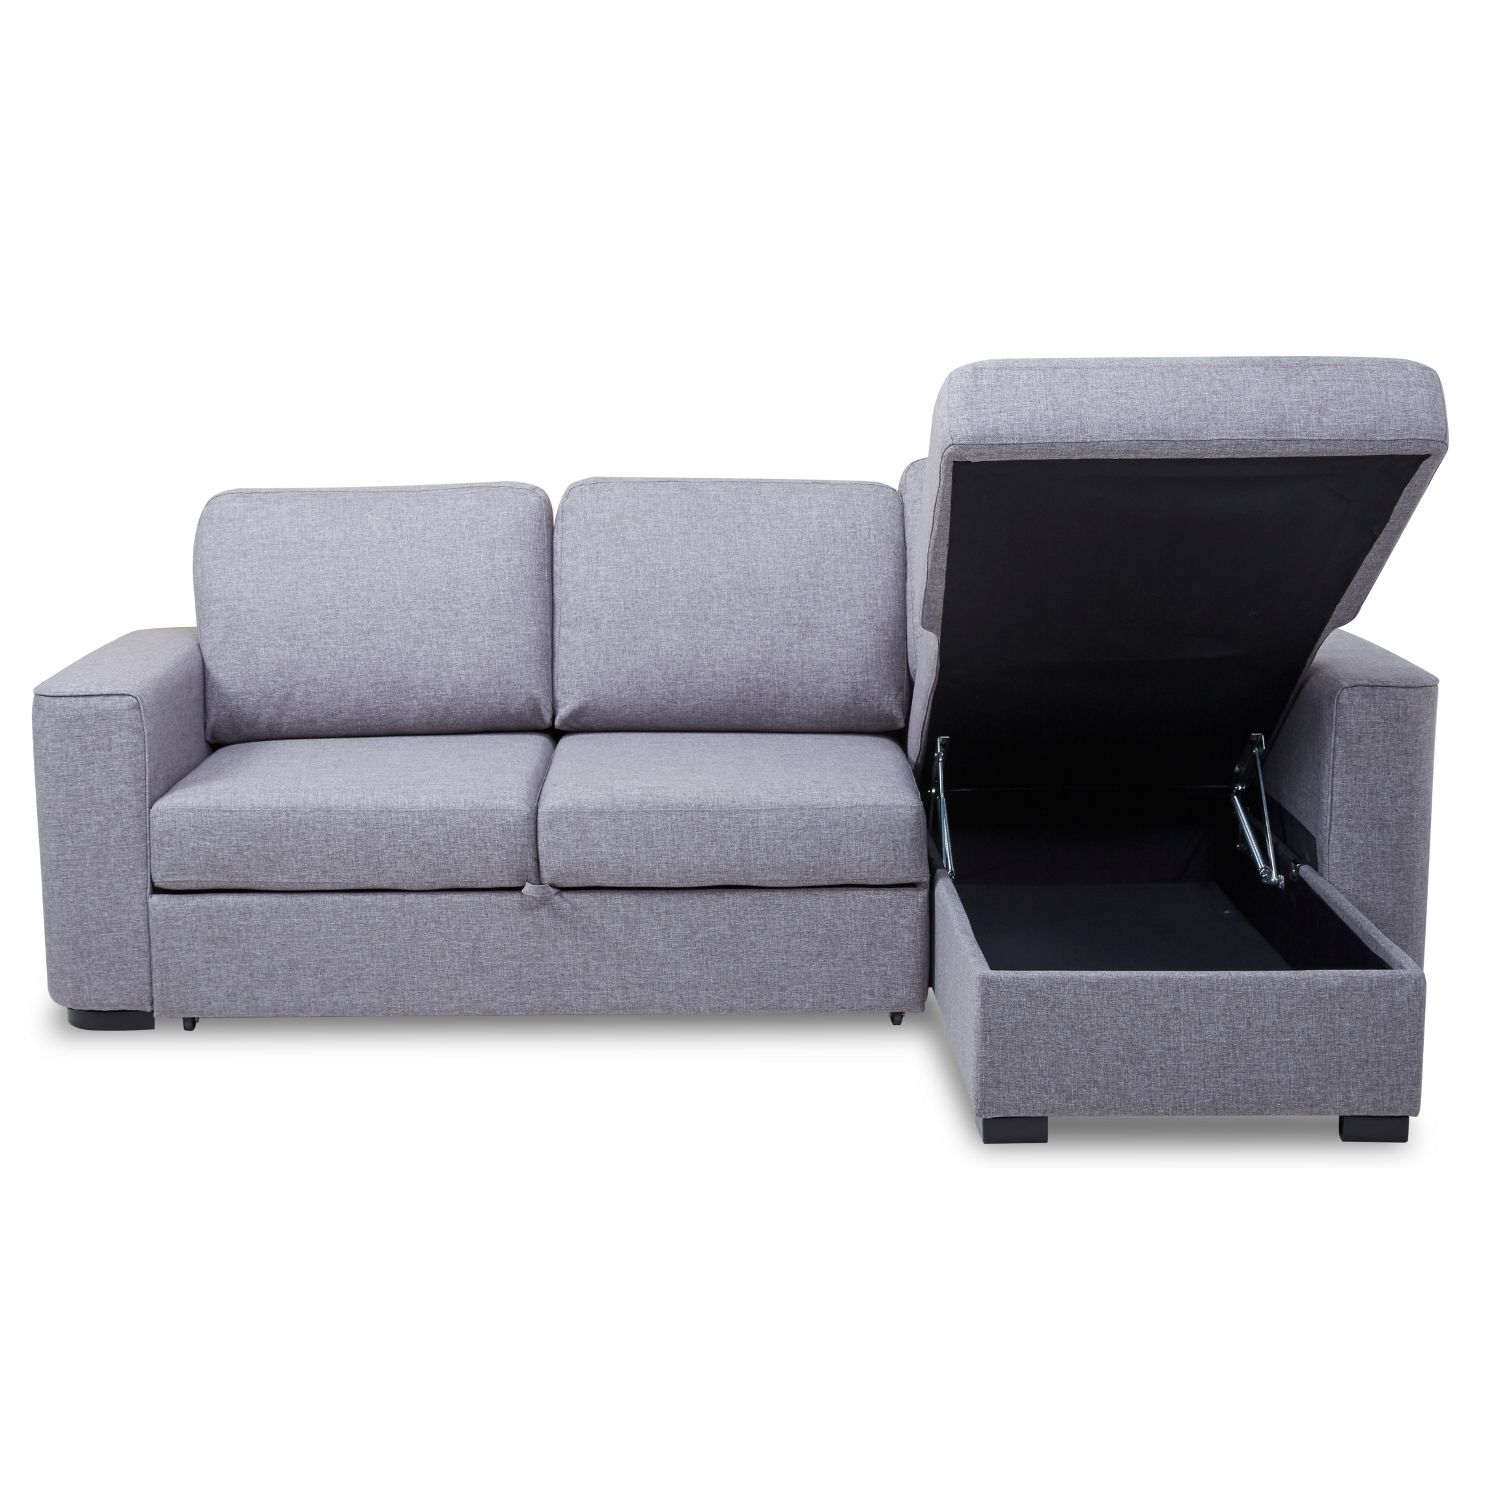 Ronny Fabric Corner Sofa Bed With Storage Next Day Delivery Ronny